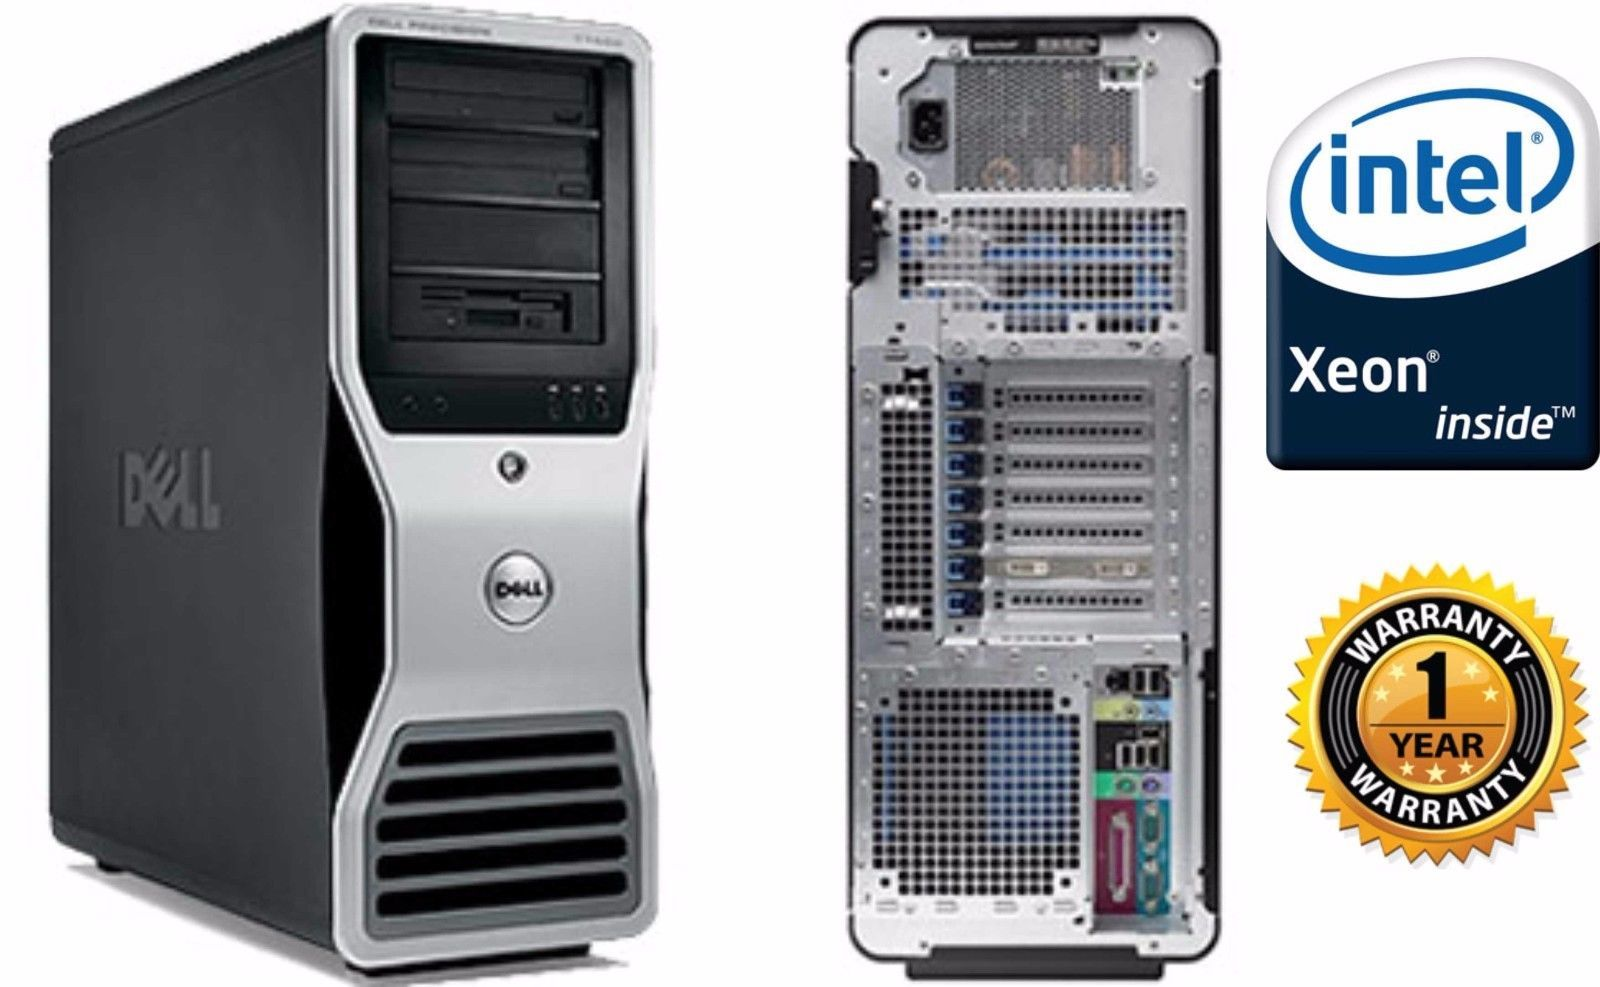 Dell Precision T7500 Workstation 2x 3 46GHz and 50 similar items